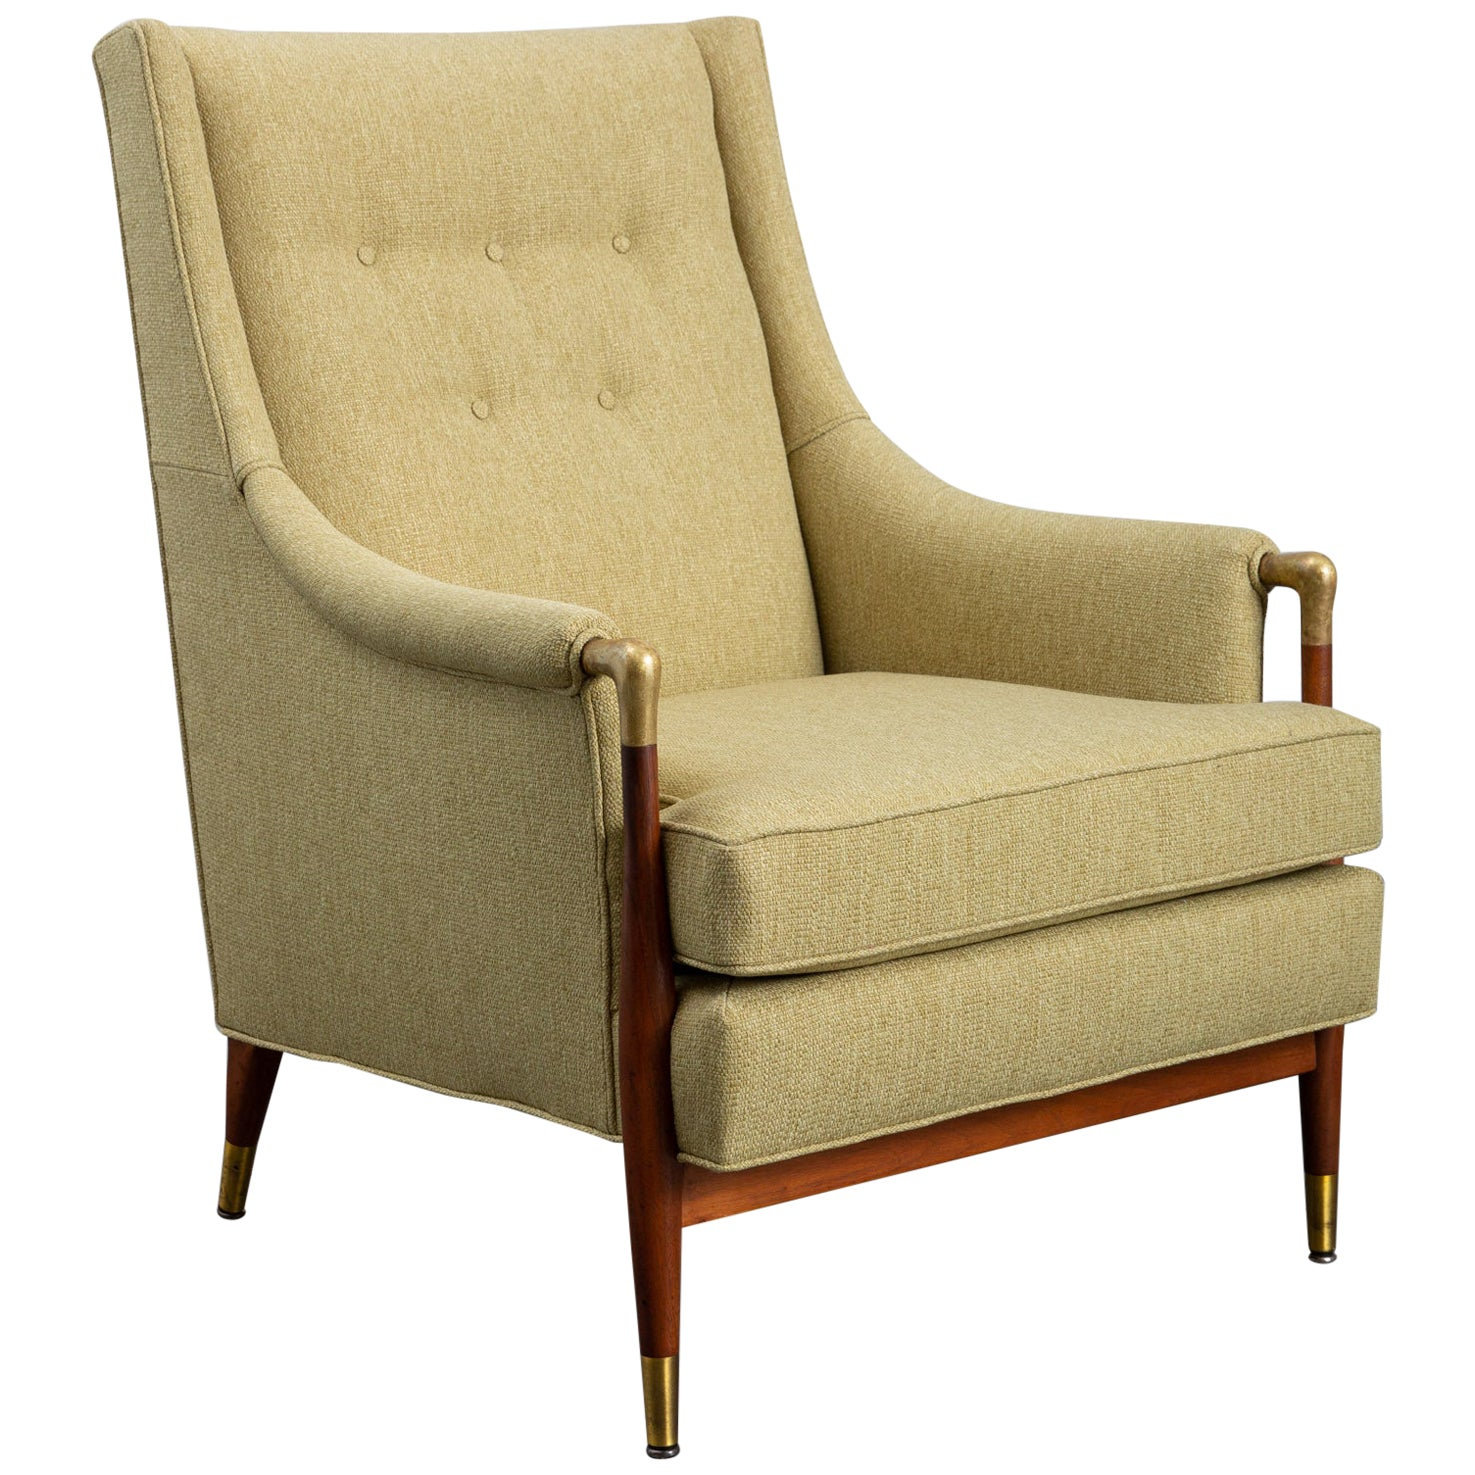 Newly Upholstered Mid-Century Modern Armchair with Brass Details